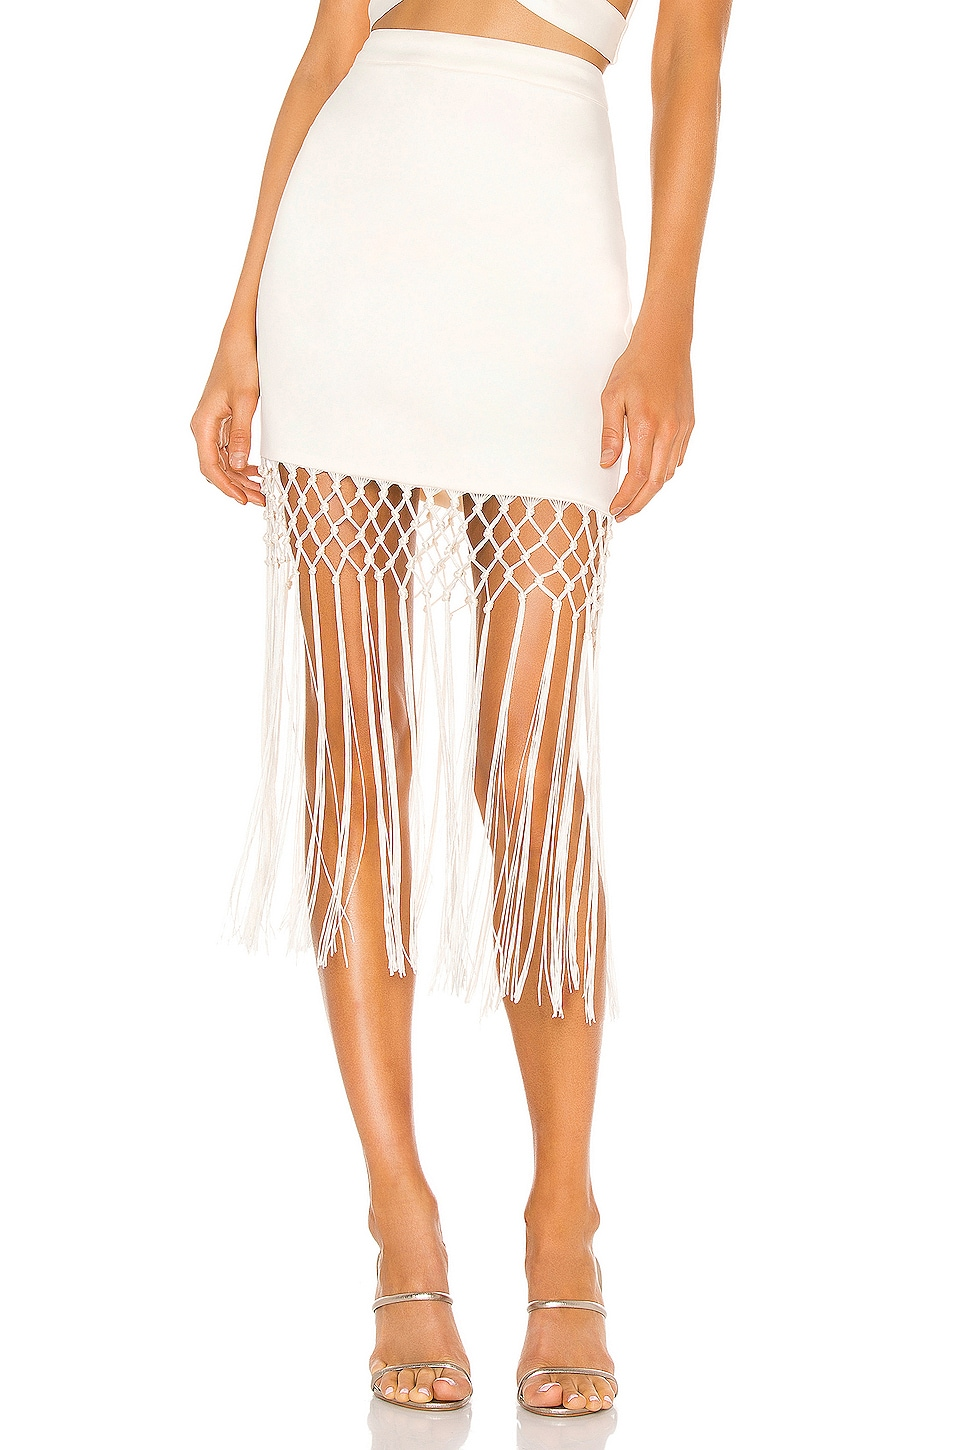 Camila Coelho Mora Mini Skirt in Pearl White